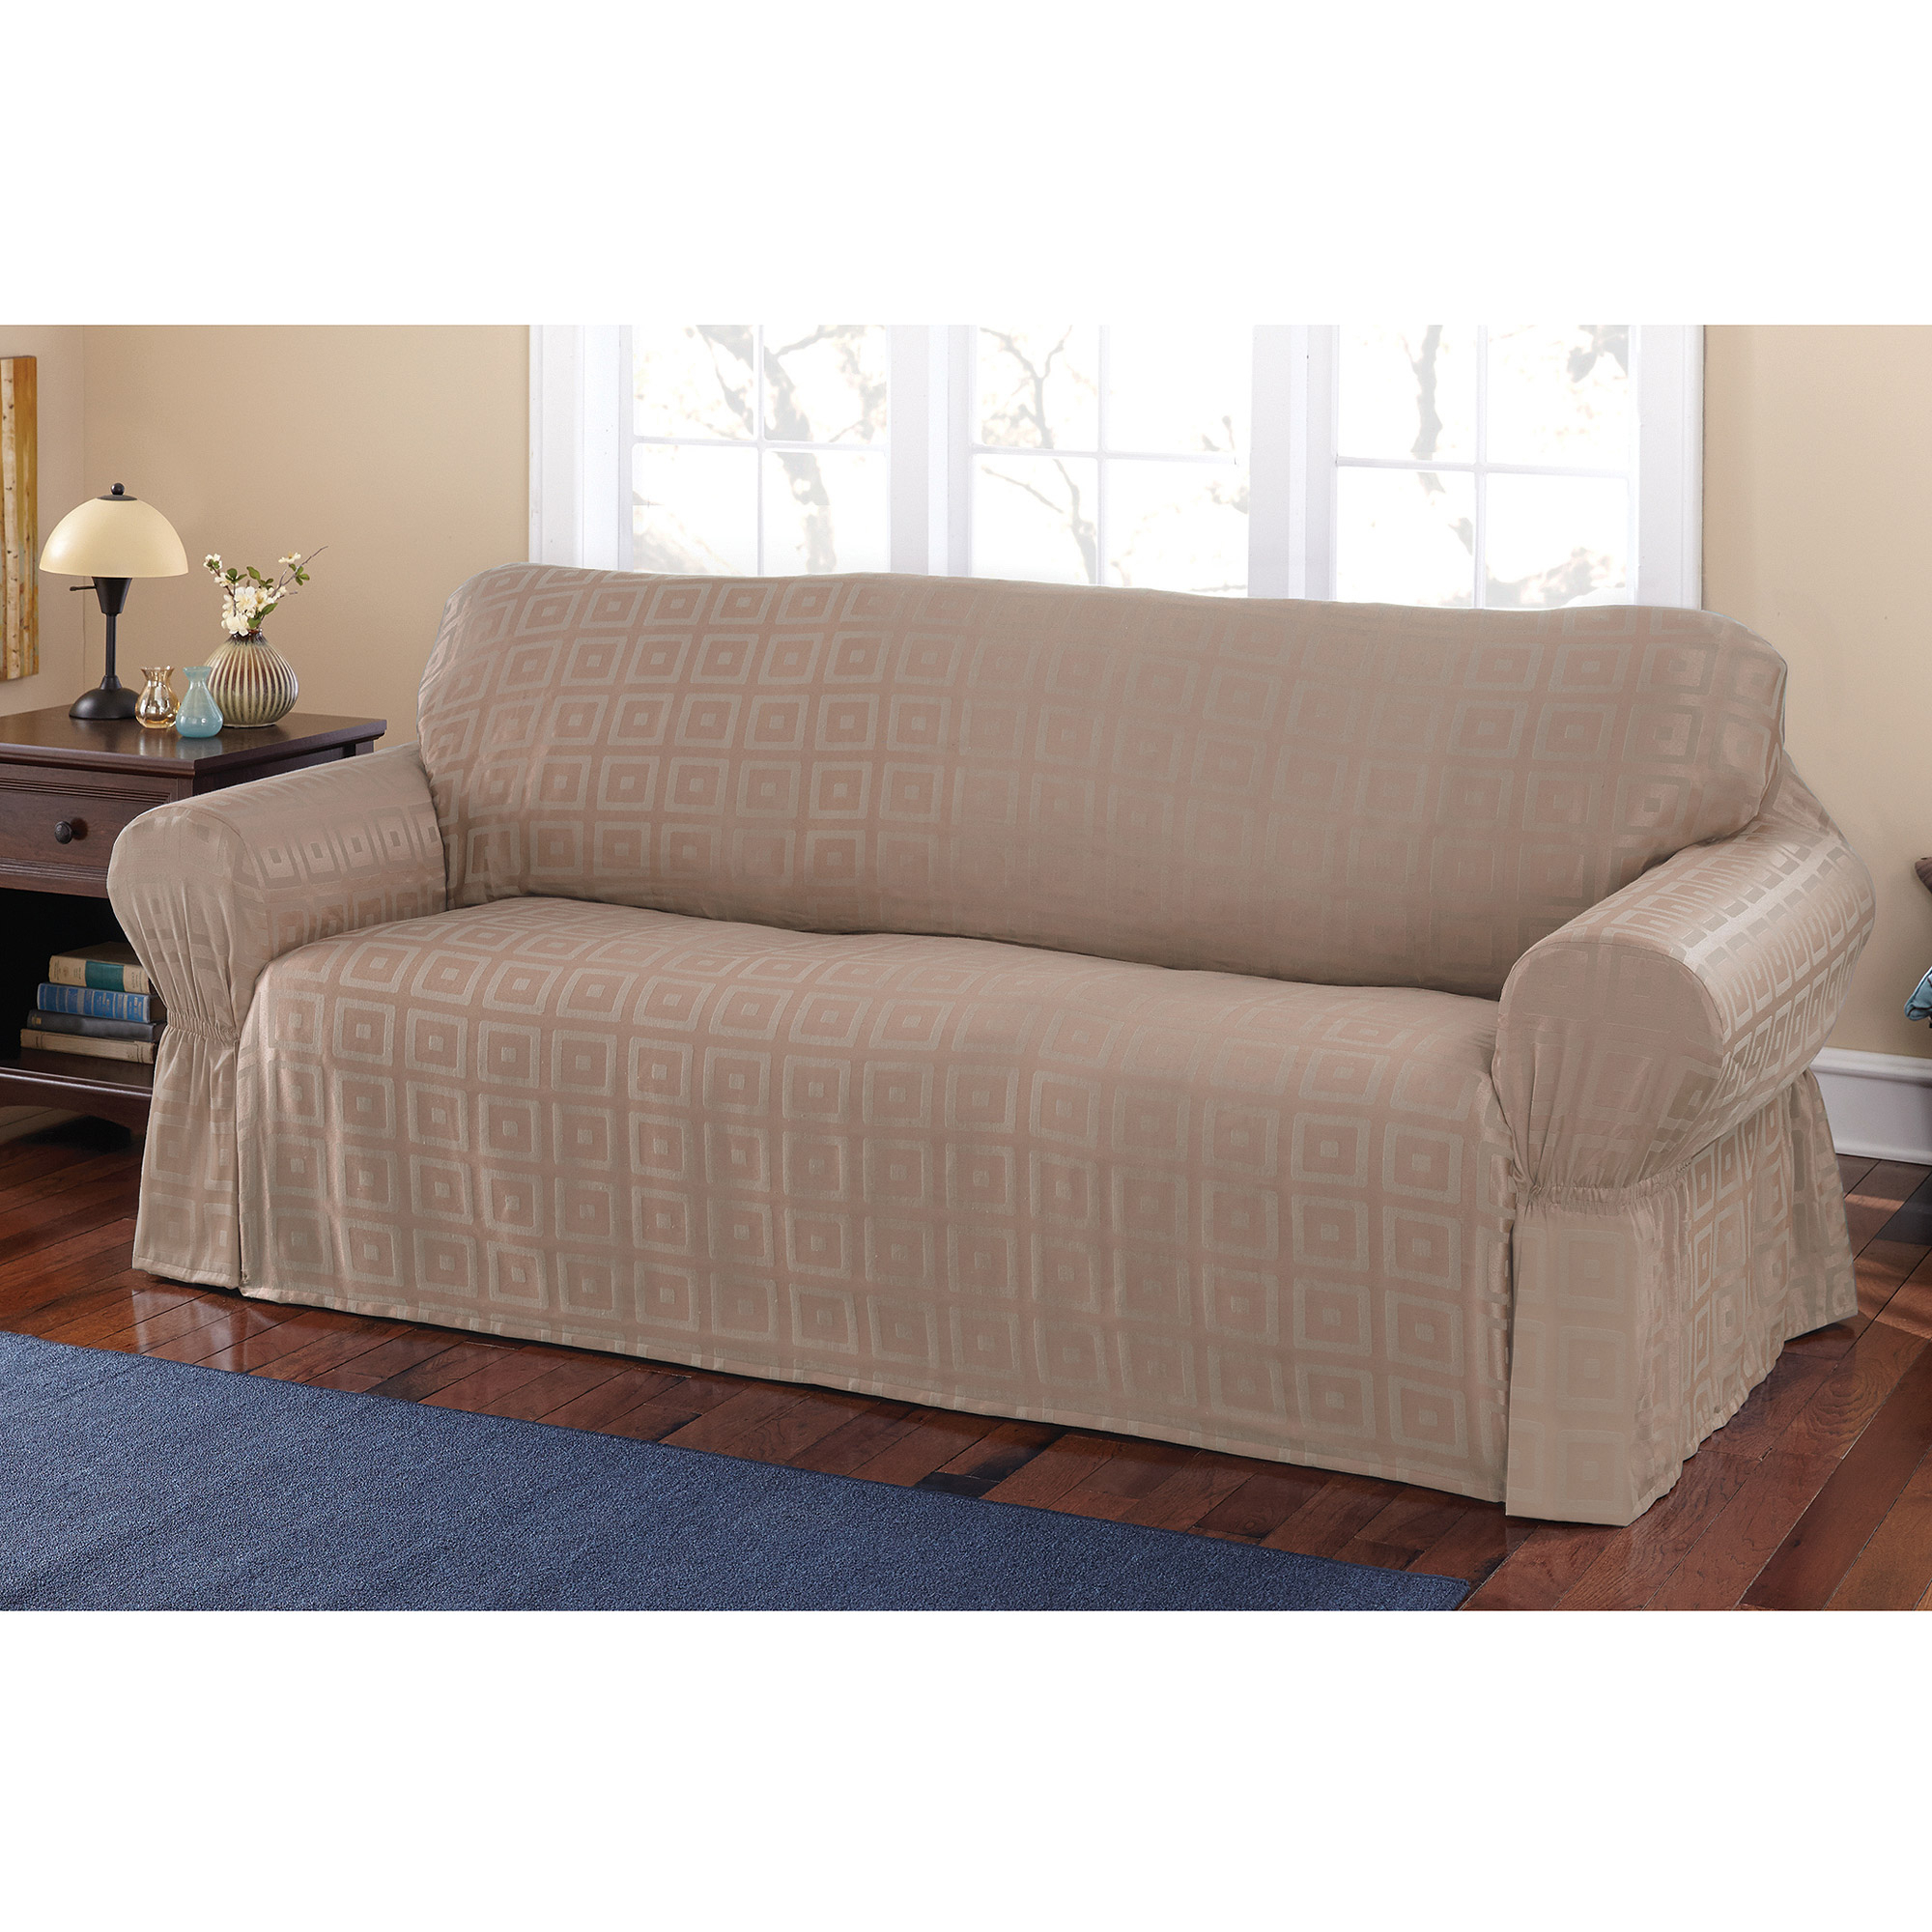 Mainstays Sherwood Slipcover Sofa – Walmart Within Current Slipcovers For Sofas And Chairs (Gallery 10 of 20)